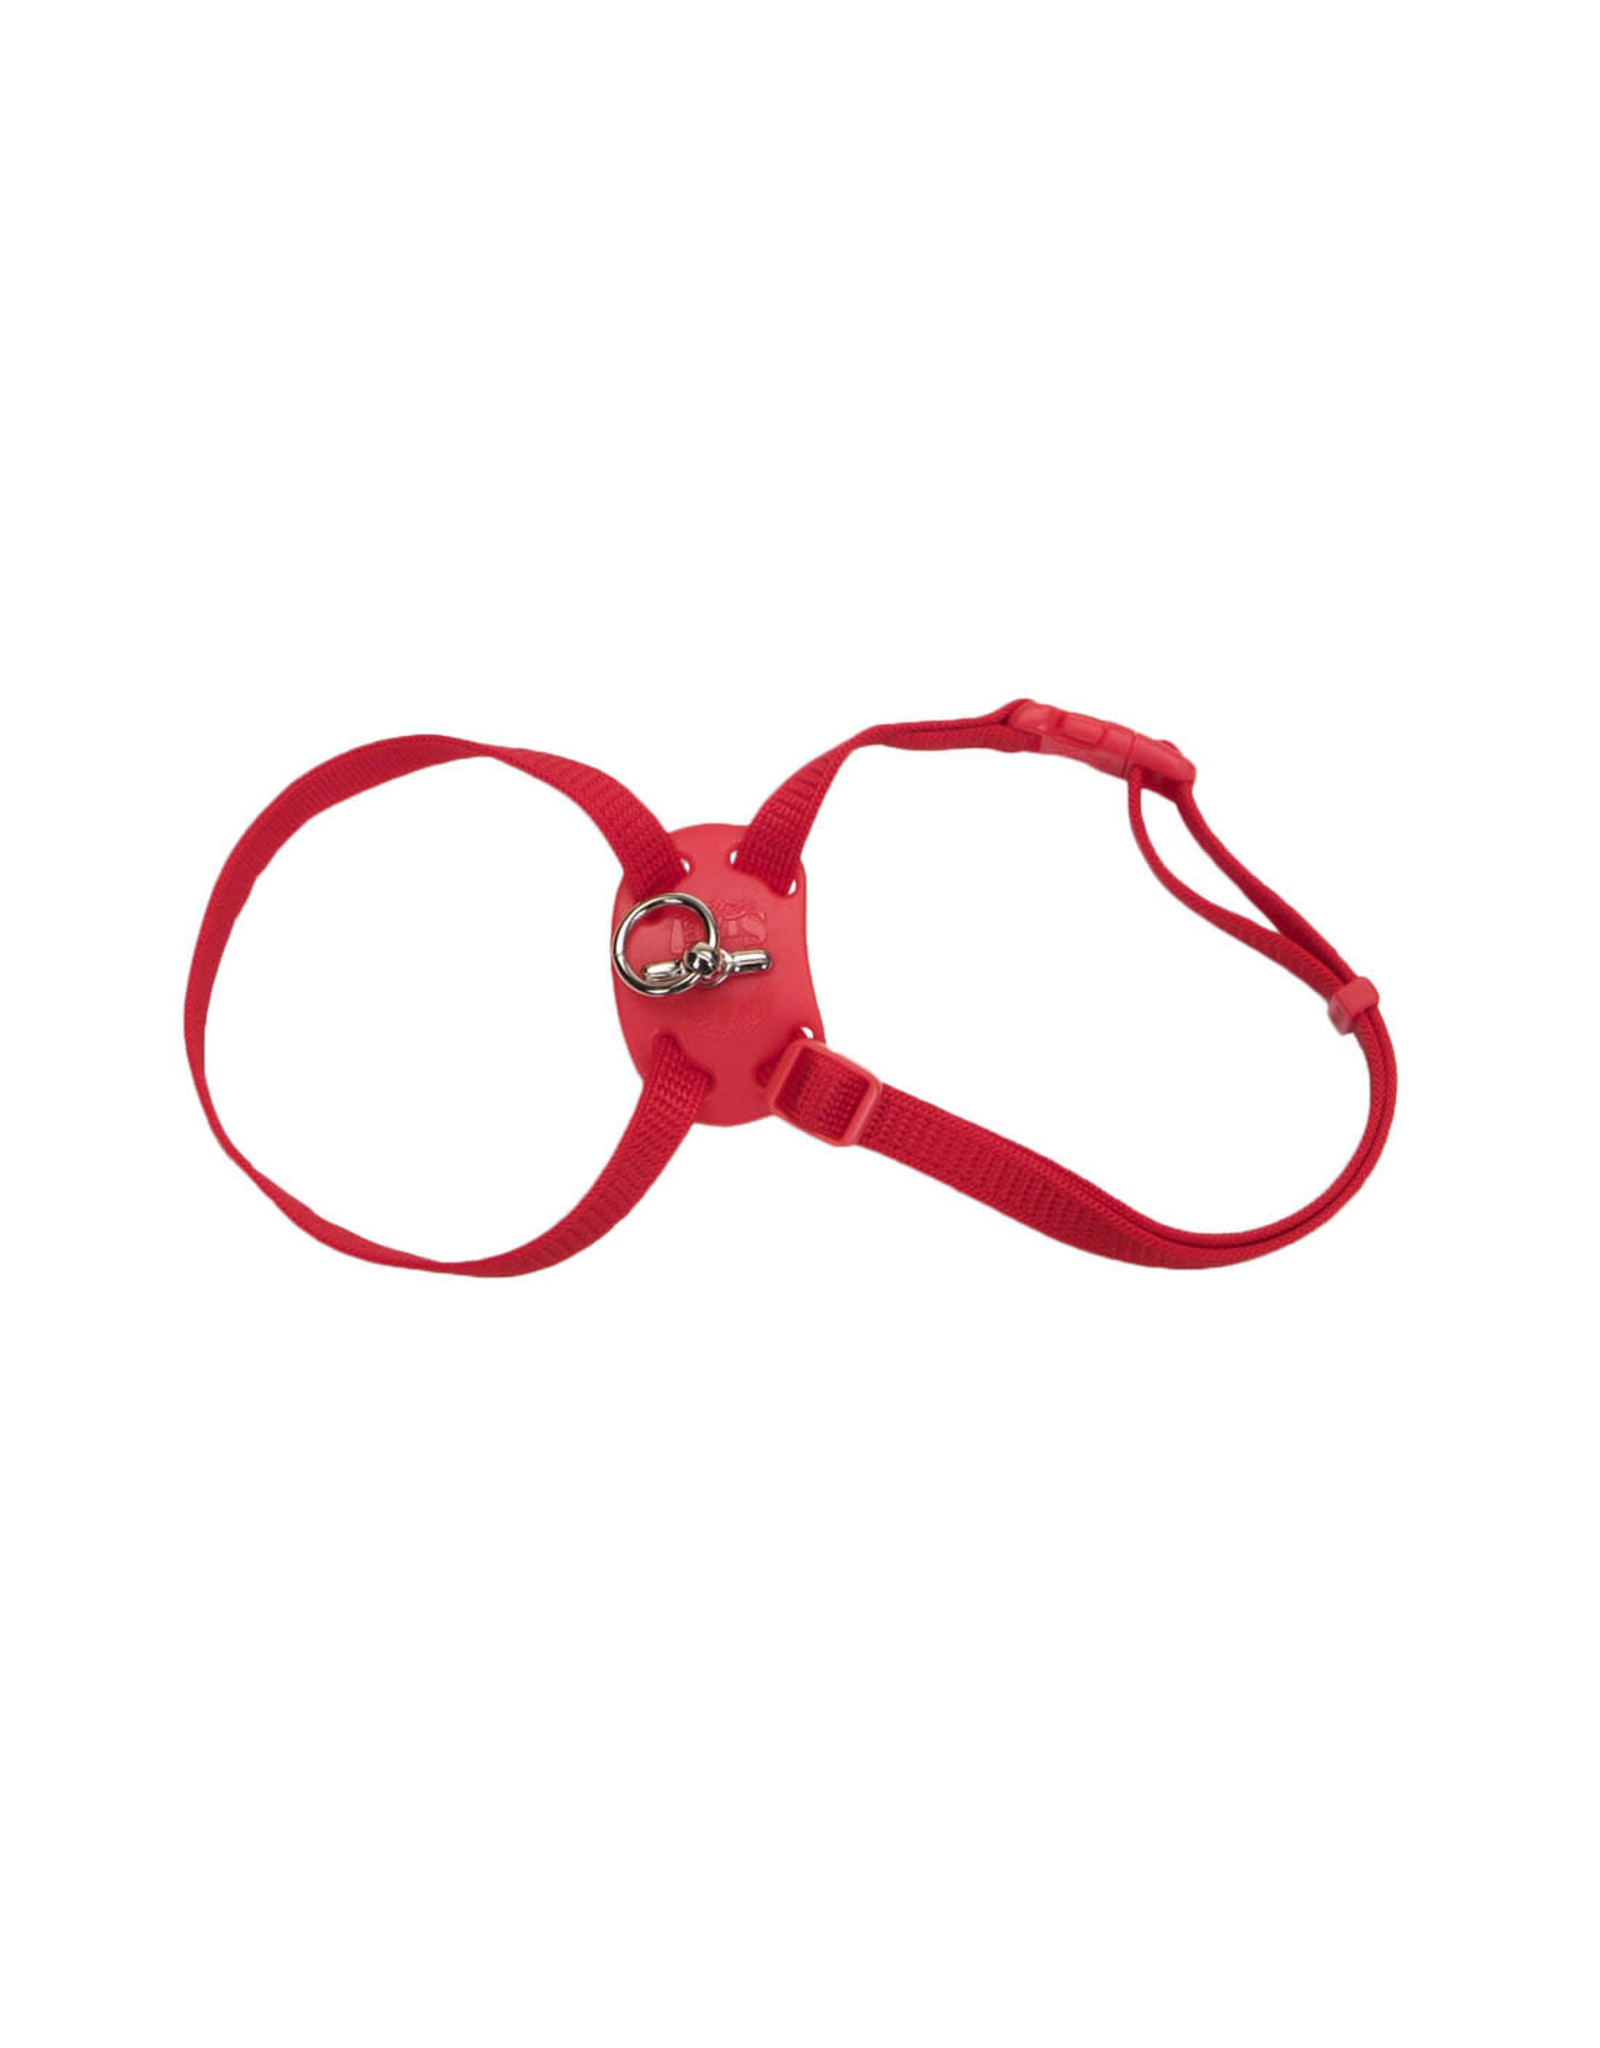 "Coastal Coastal Cat Nylon Harness 12-18"" Red"